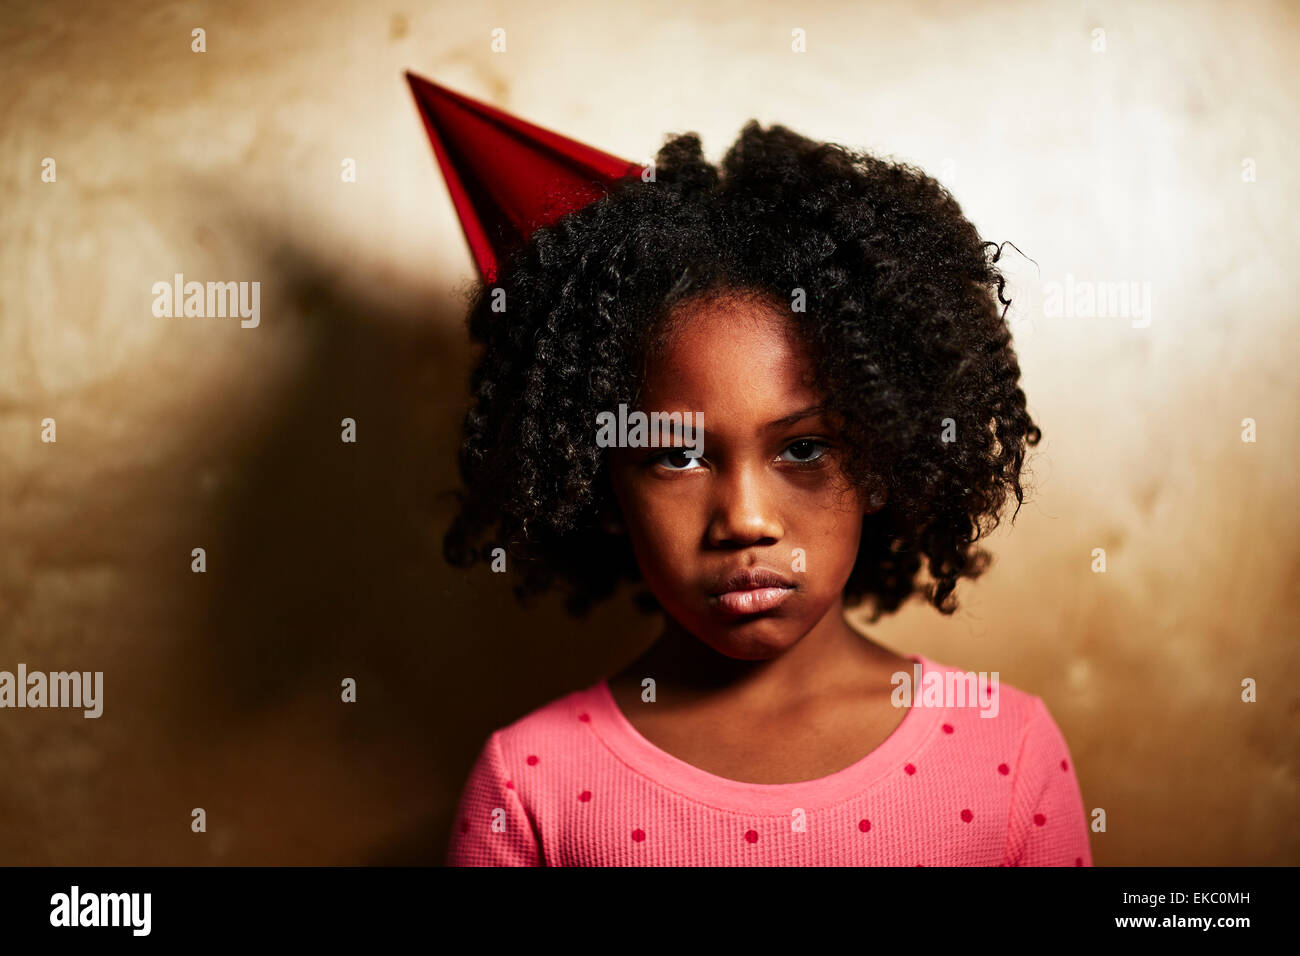 Sad girl wearing party hat Photo Stock